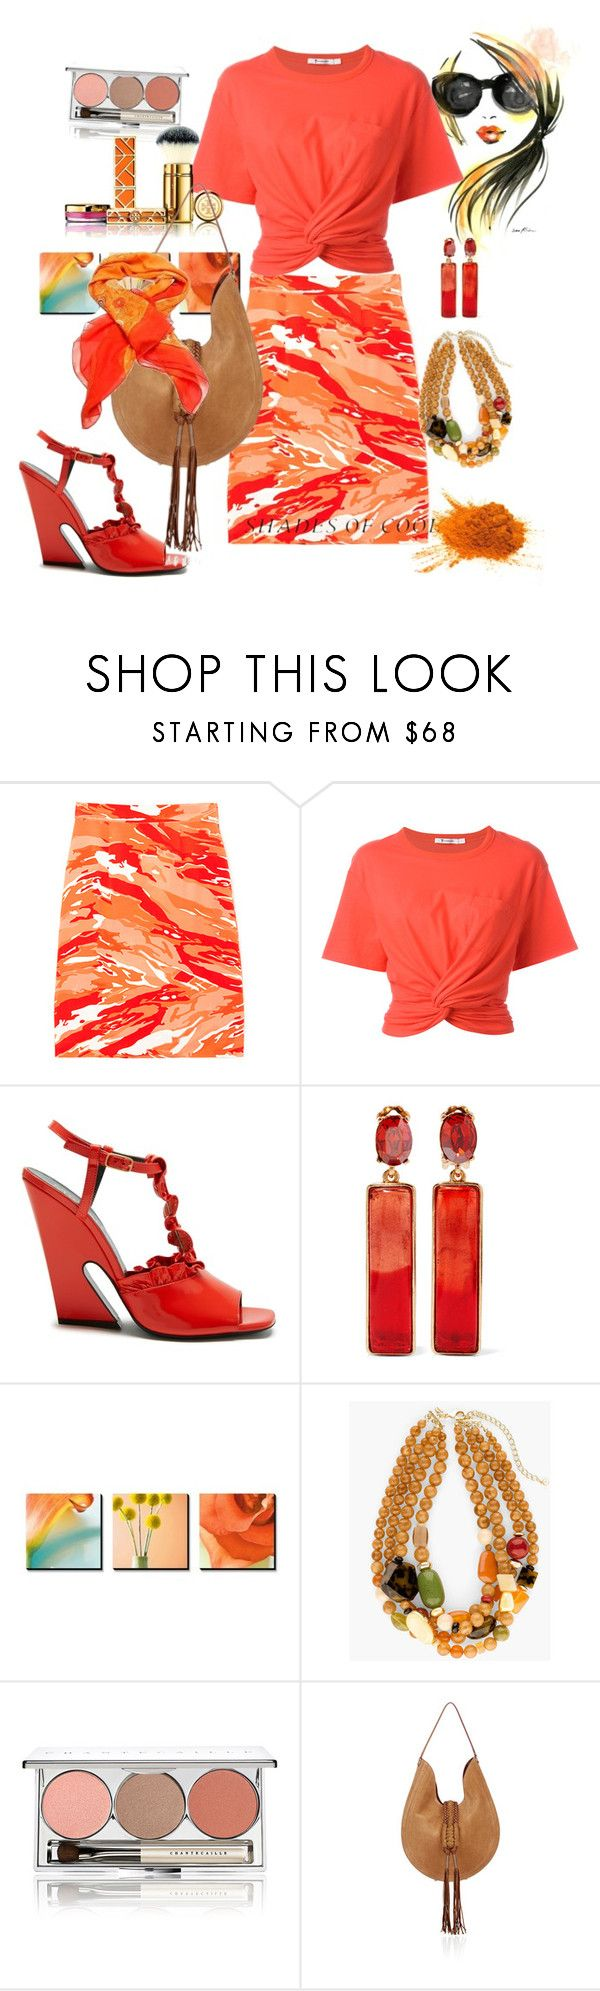 """Untitled #436"" by csfshawn on Polyvore featuring Mother of Pearl, T By Alexander Wang, Mulberry, Oscar de la Renta, Chico's, Chantecaille, Tory Burch, Altuzarra and Hermès"